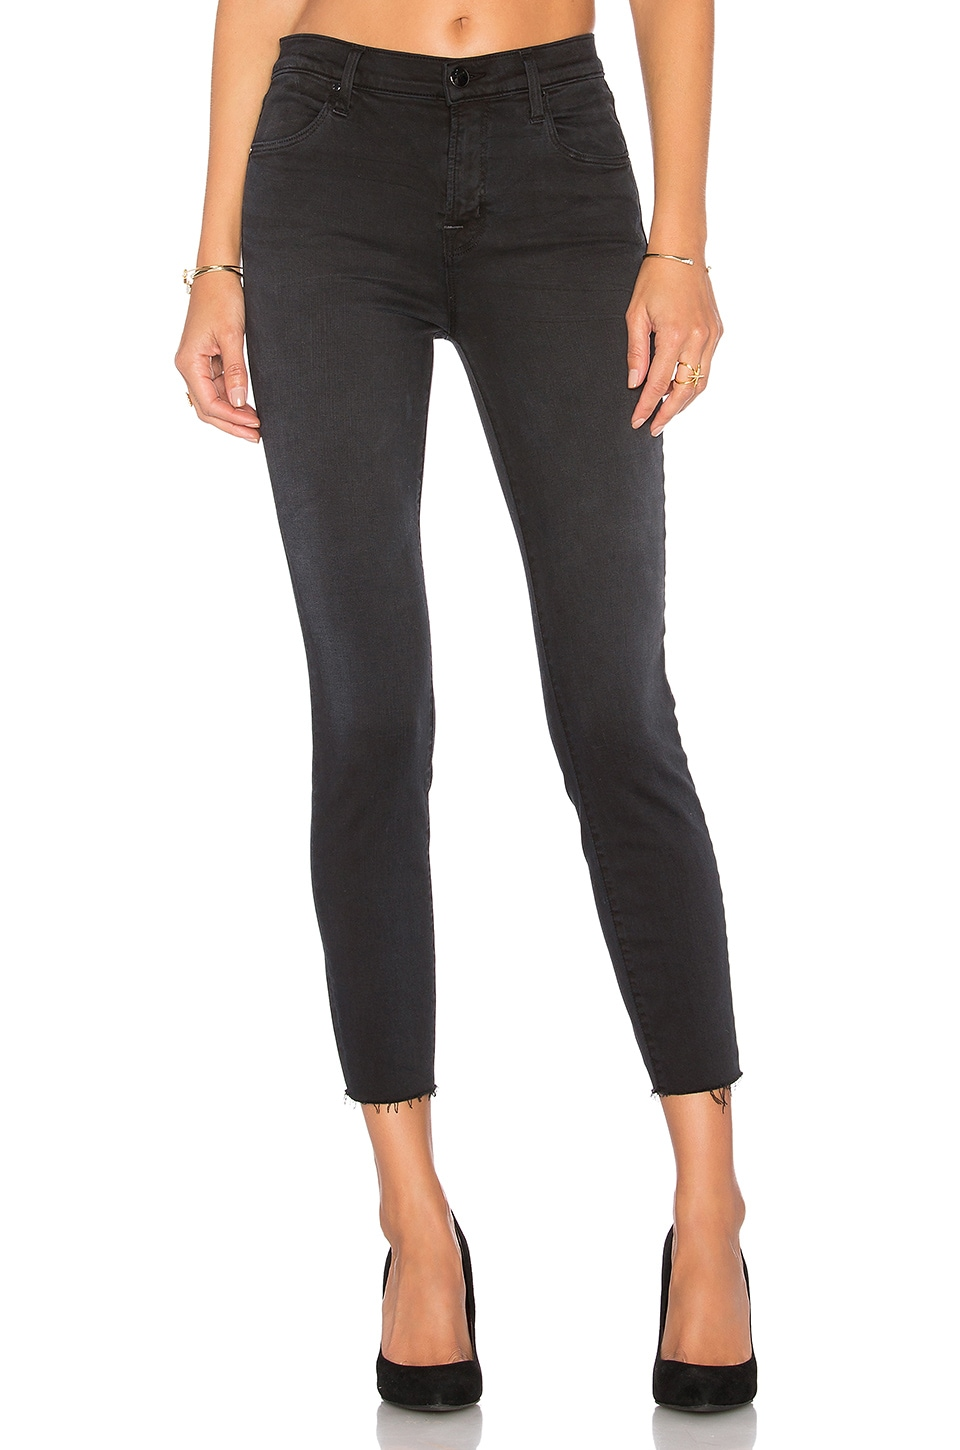 J Brand Alana High Rise Crop in Occult